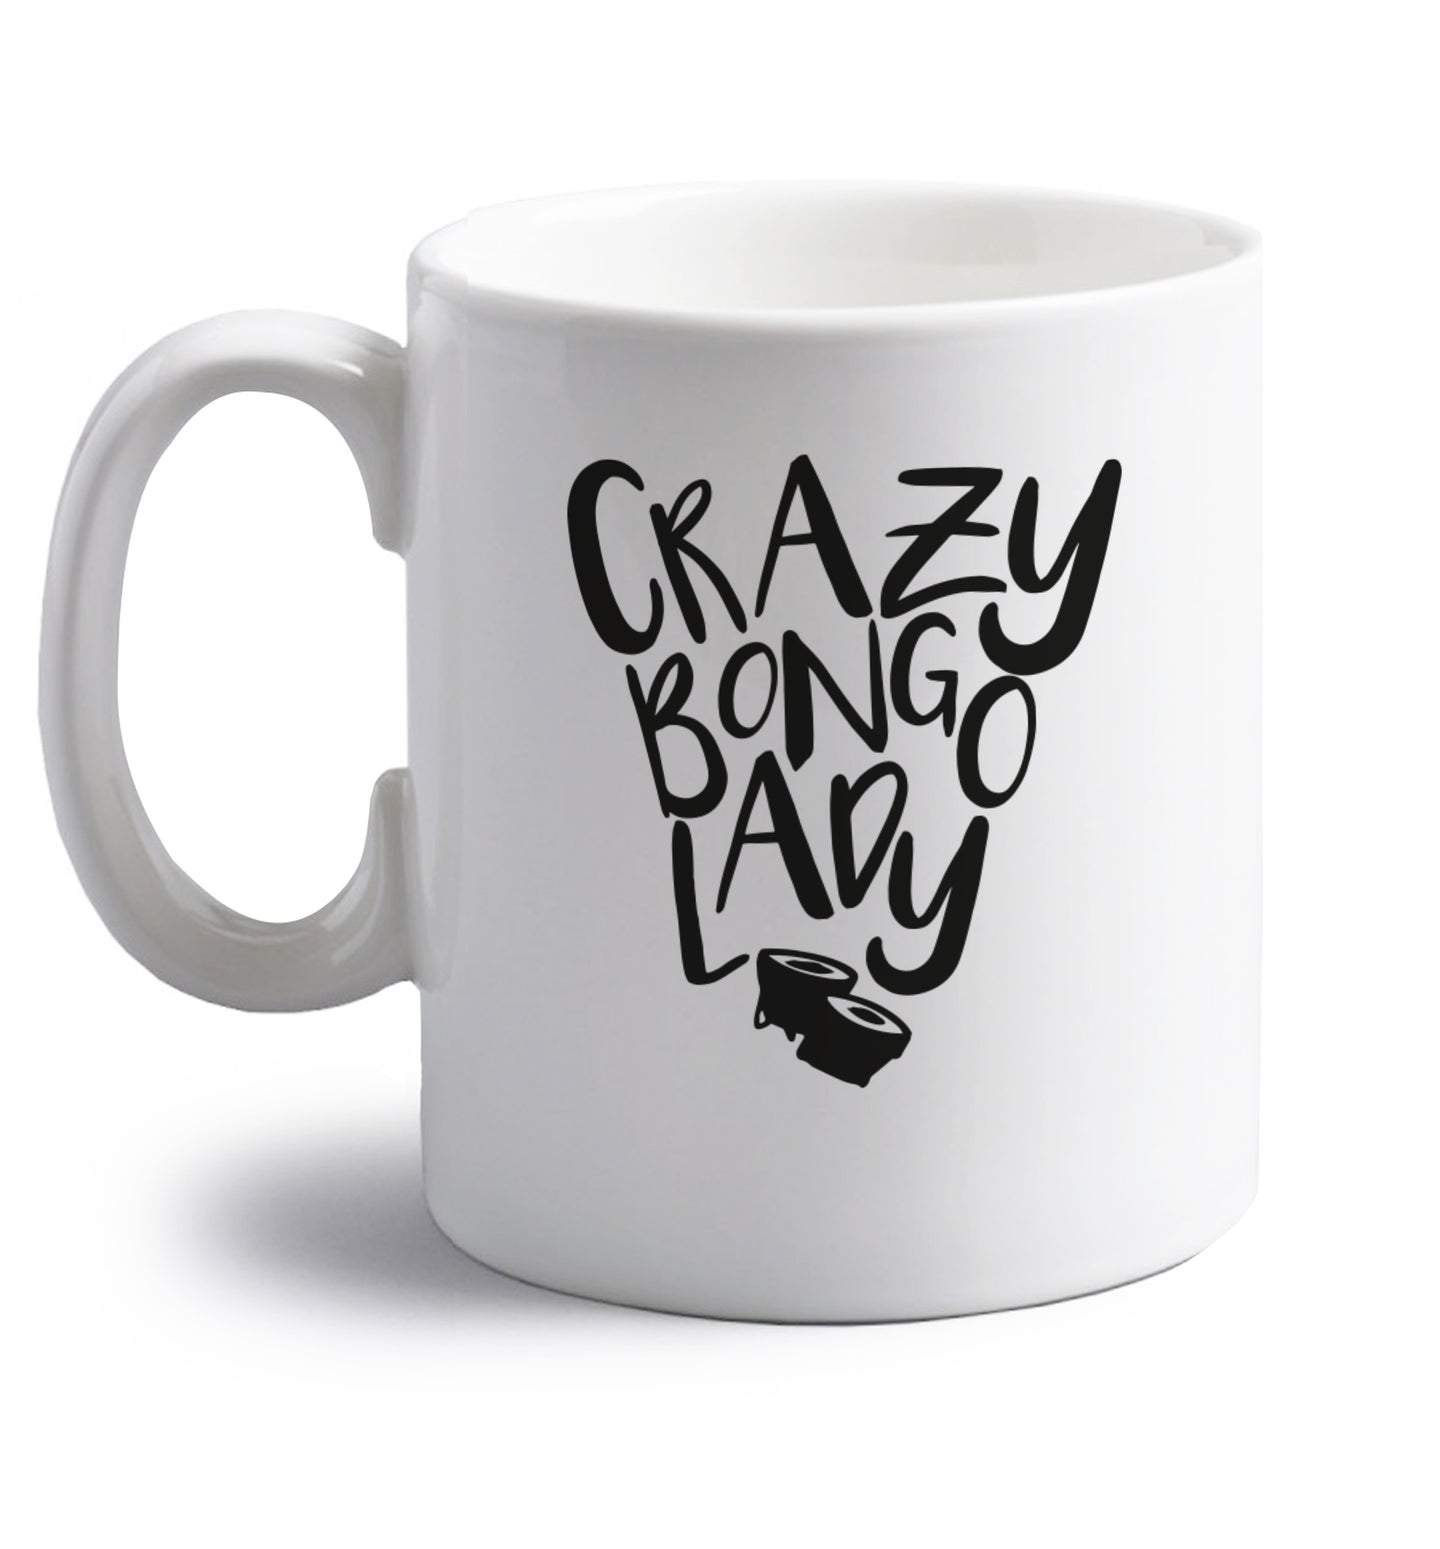 Crazy bongo lady right handed white ceramic mug